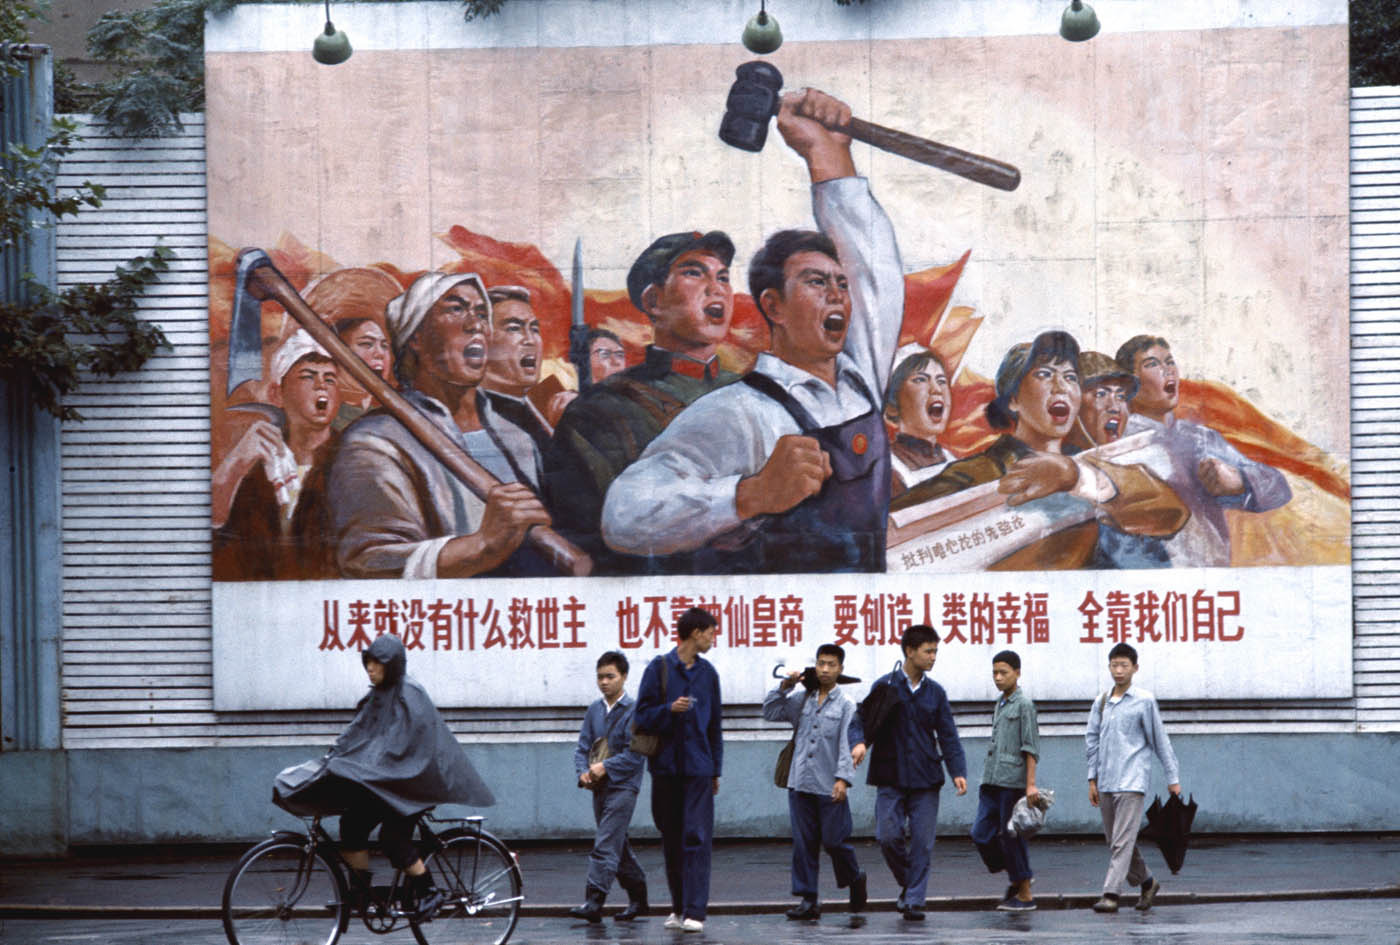 Poster self reliance, Shanghai, 1973 © Bruno Barbey / Beaugeste Gallery